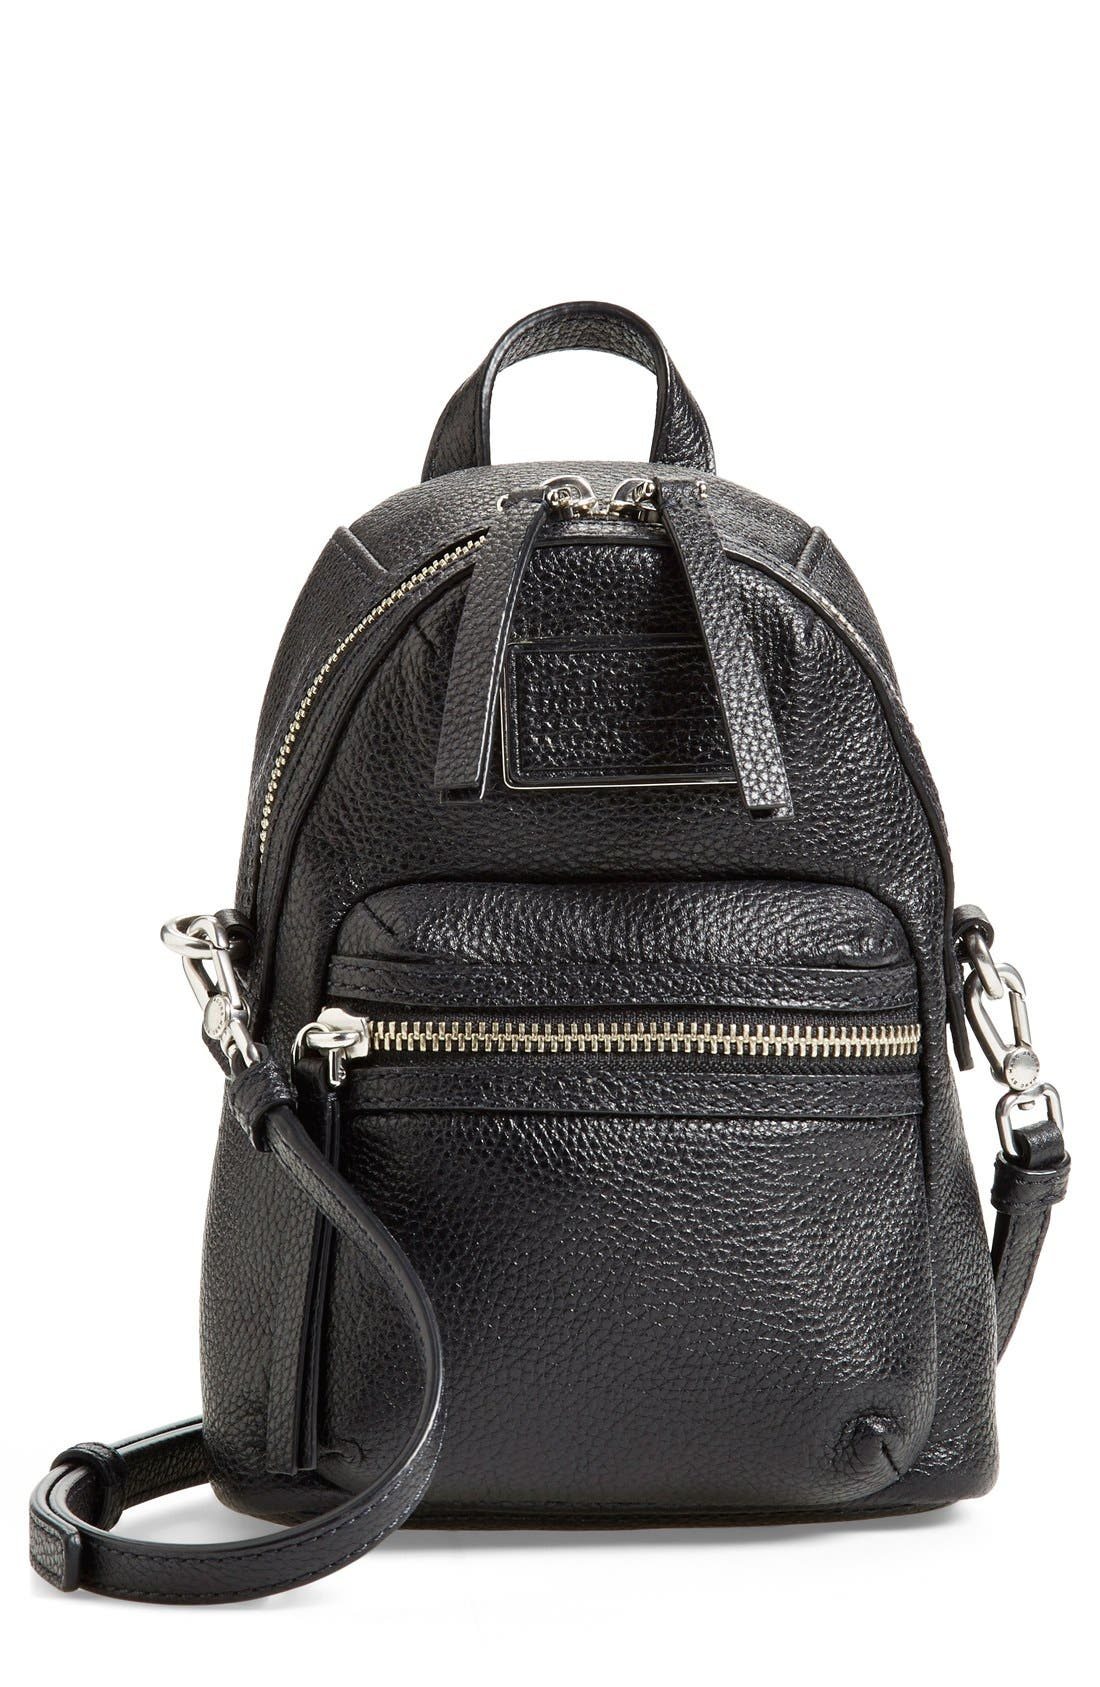 Main Image - MARC BY MARC JACOBS 'Domo' Crossbody Bag